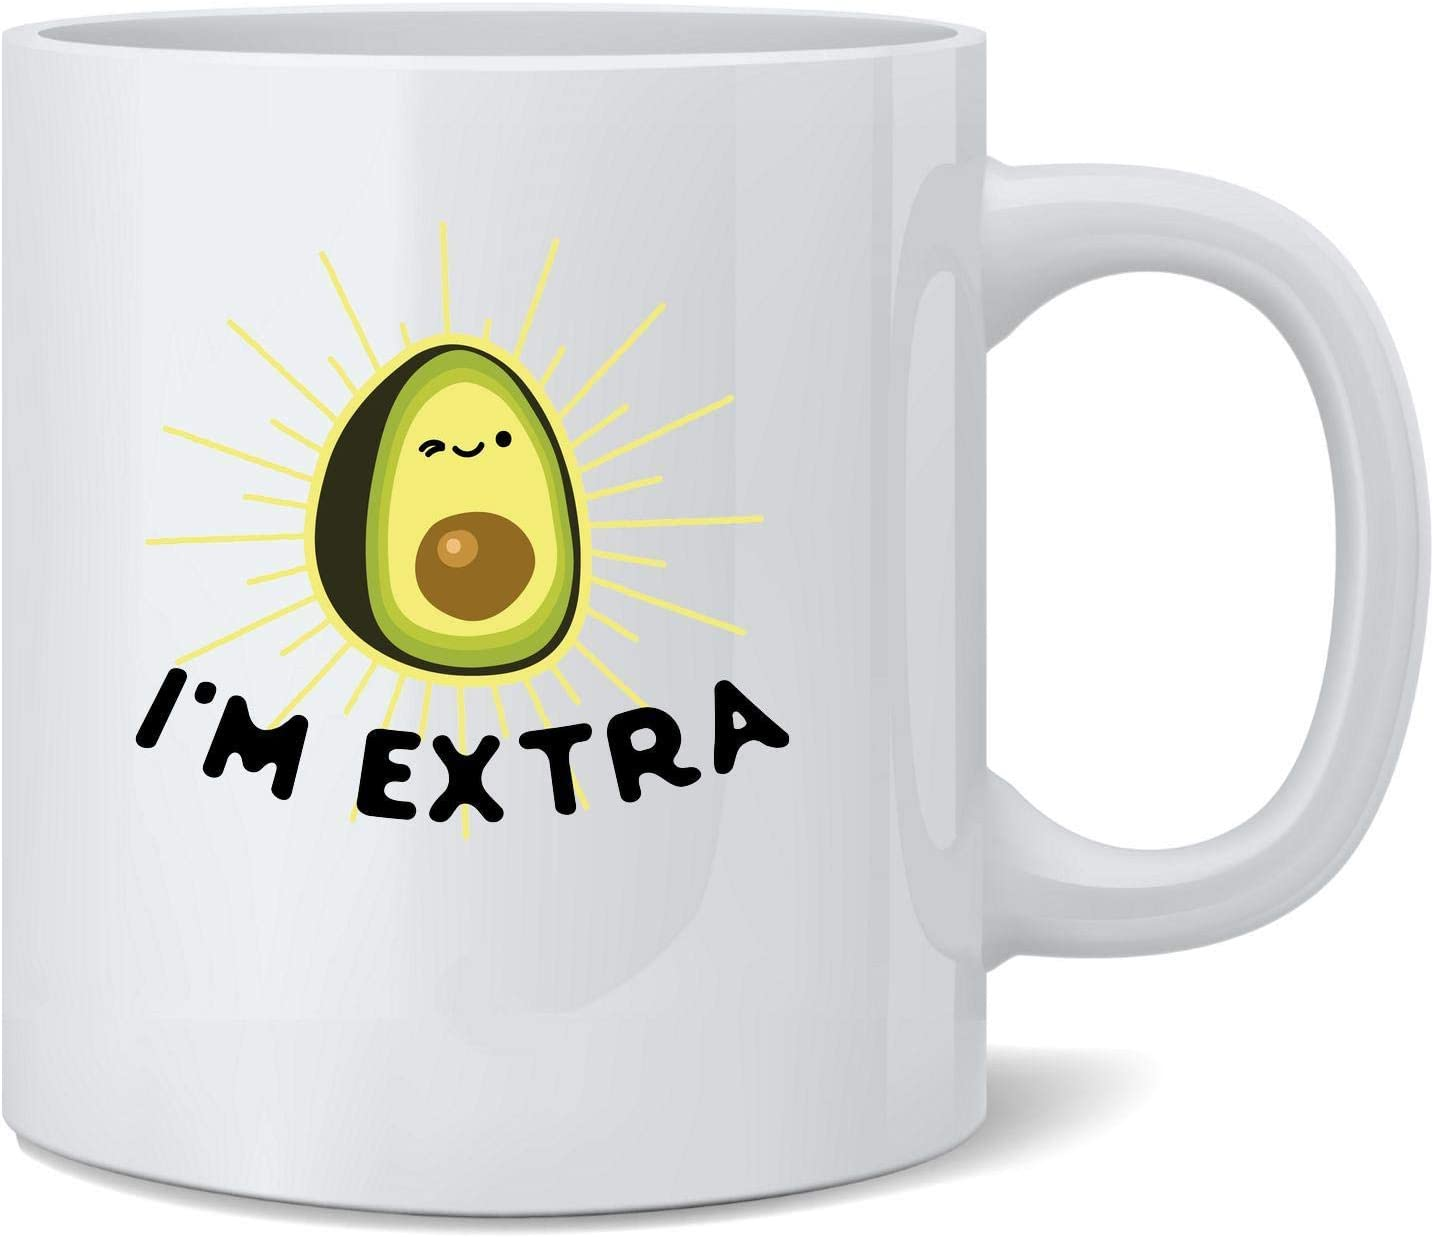 Poster Foundry Im Extra Avocado Guacamole Cute Funny Ceramic Coffee Mug Tea Cup Fun Novelty Gift 12 oz